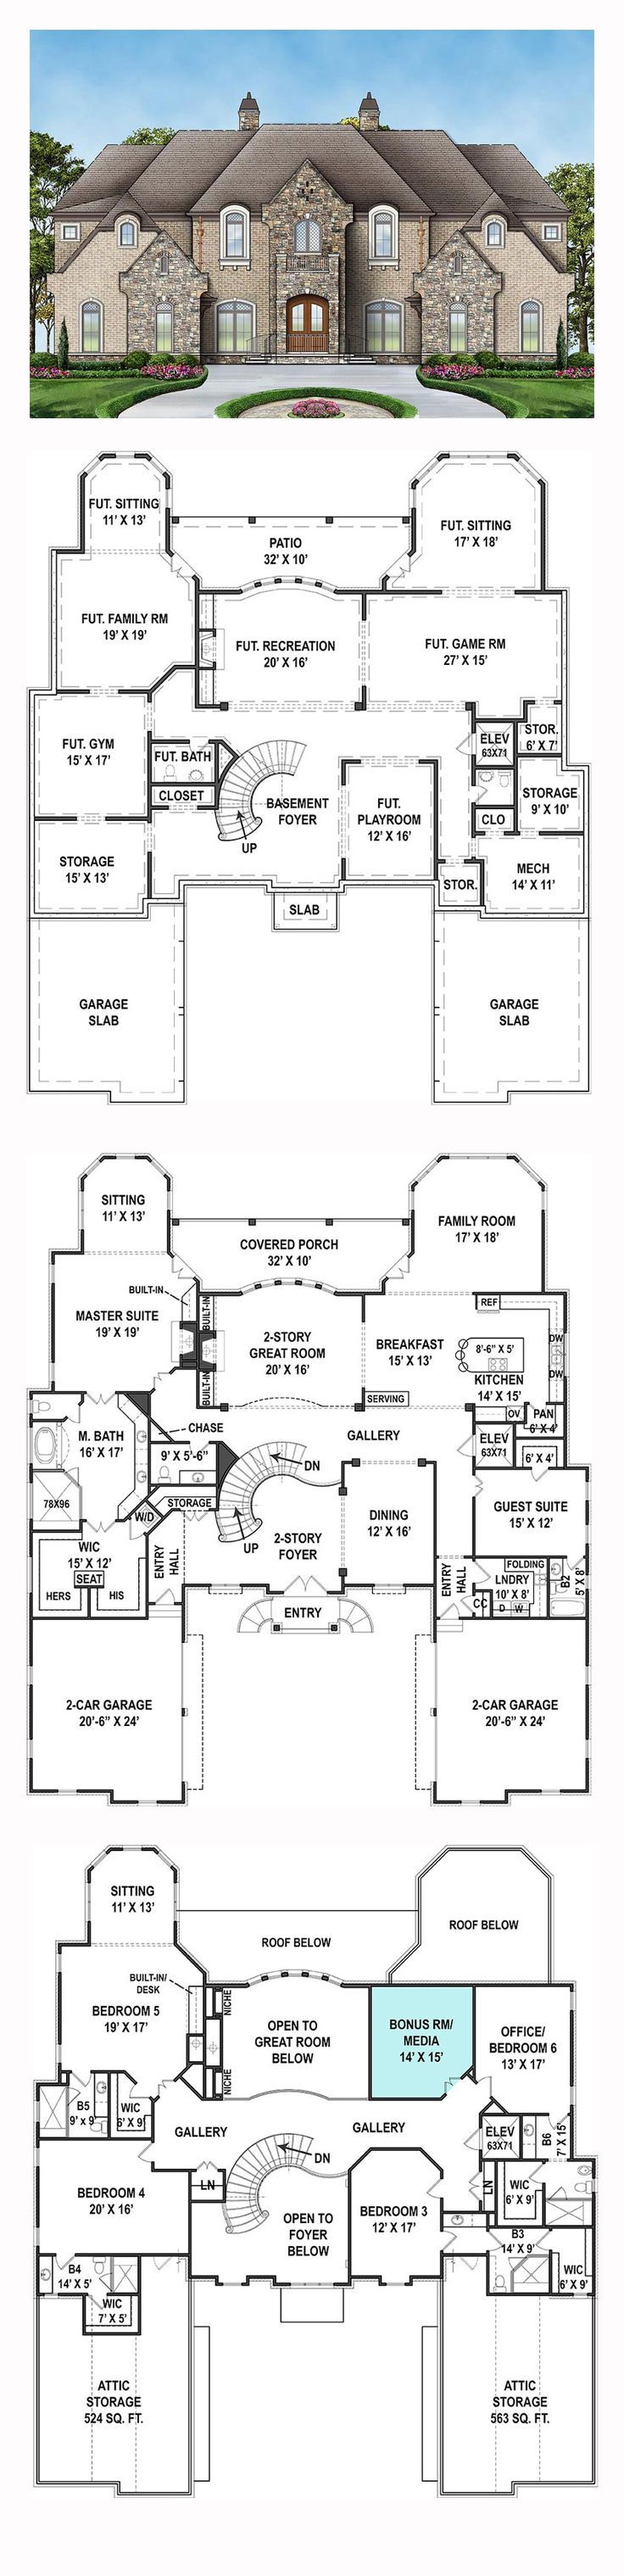 7d29688a6a7c98dd15ded52bc677c8d4 new house plans luxury house plans best 25 luxury home plans ideas on pinterest,2 Story Luxury House Plans